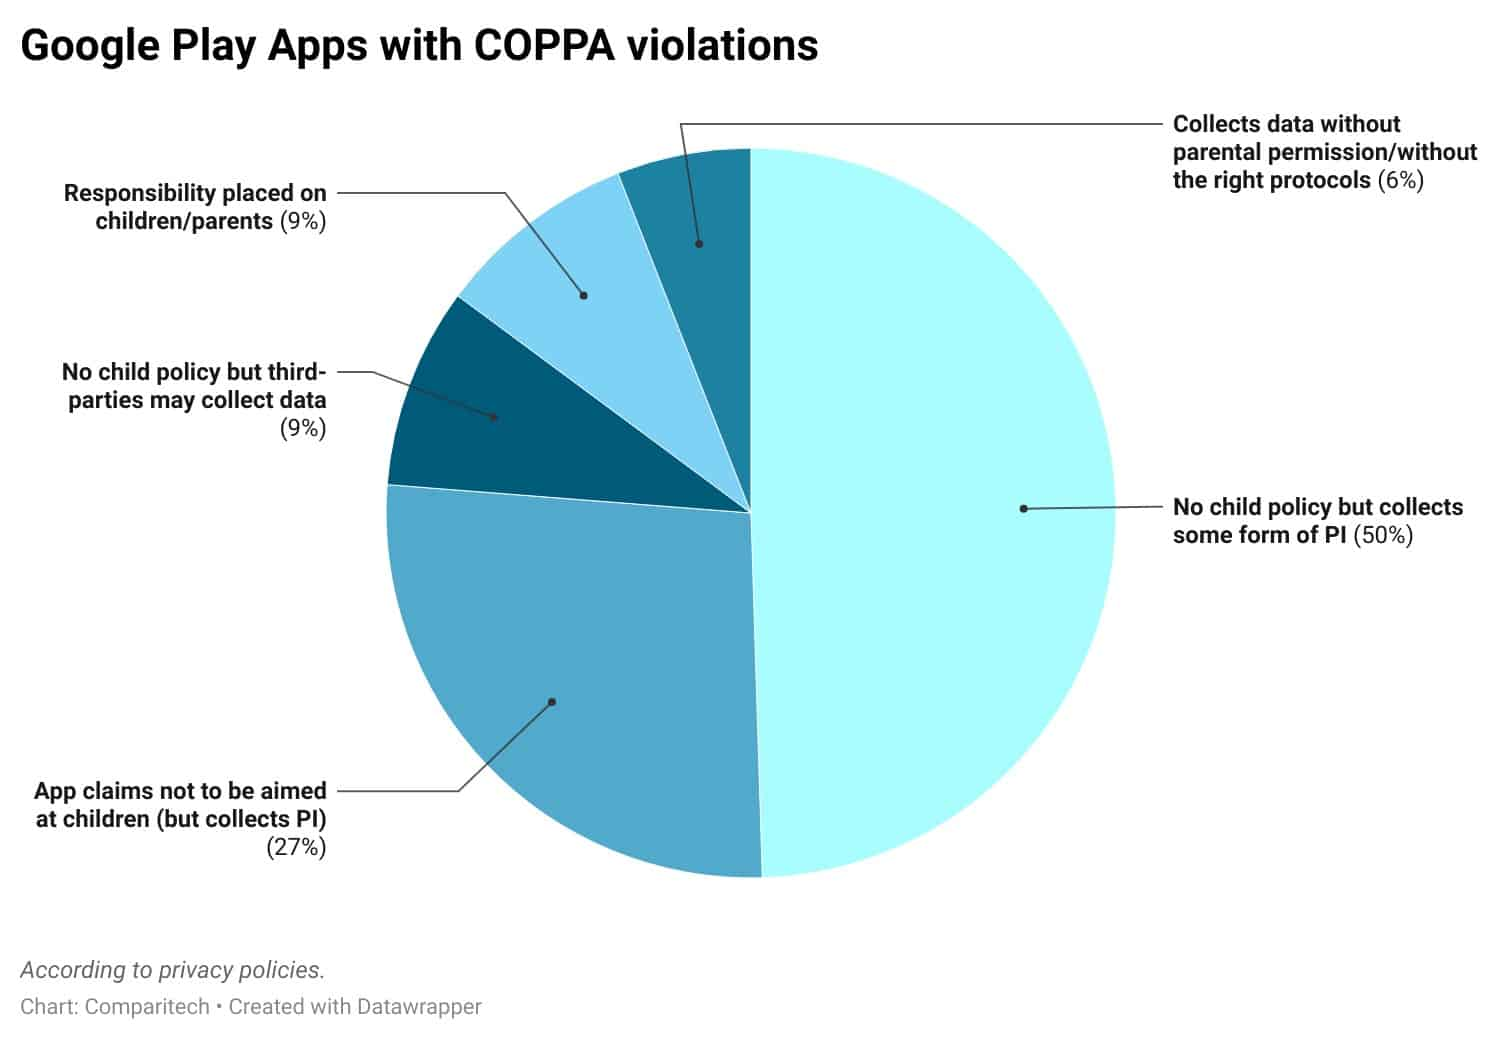 Google Play Apps with COPPA violations